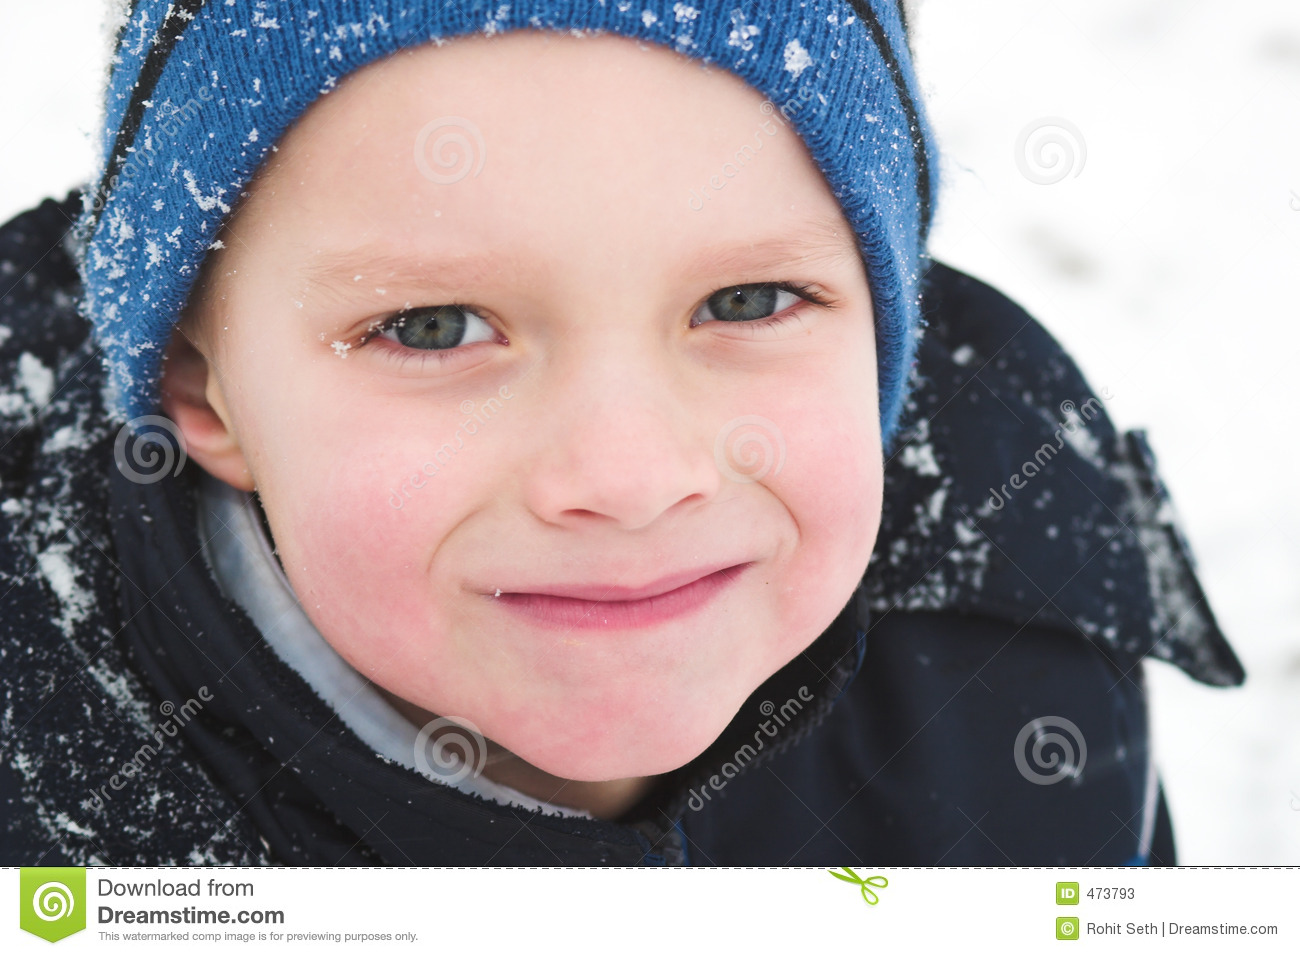 Playing outside in the winters